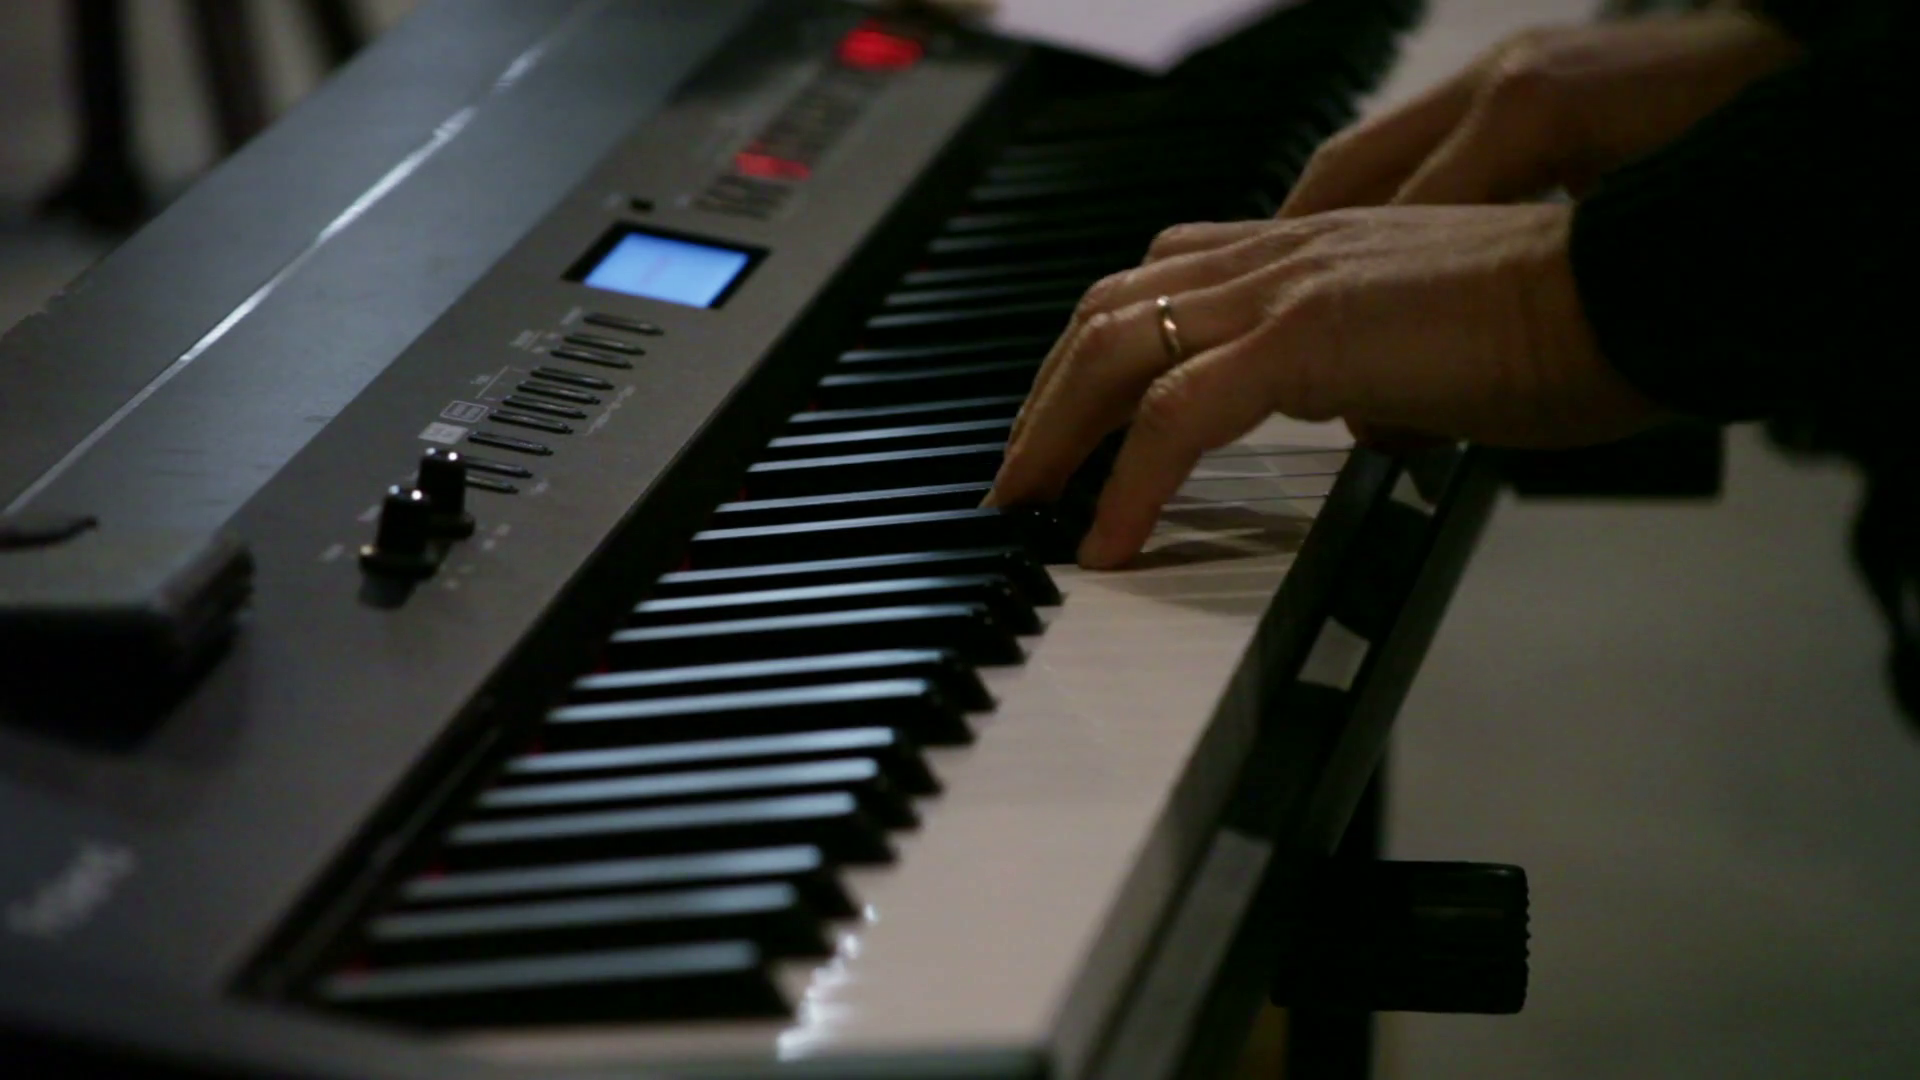 Playing Williams Legato 88 Key Digital Piano